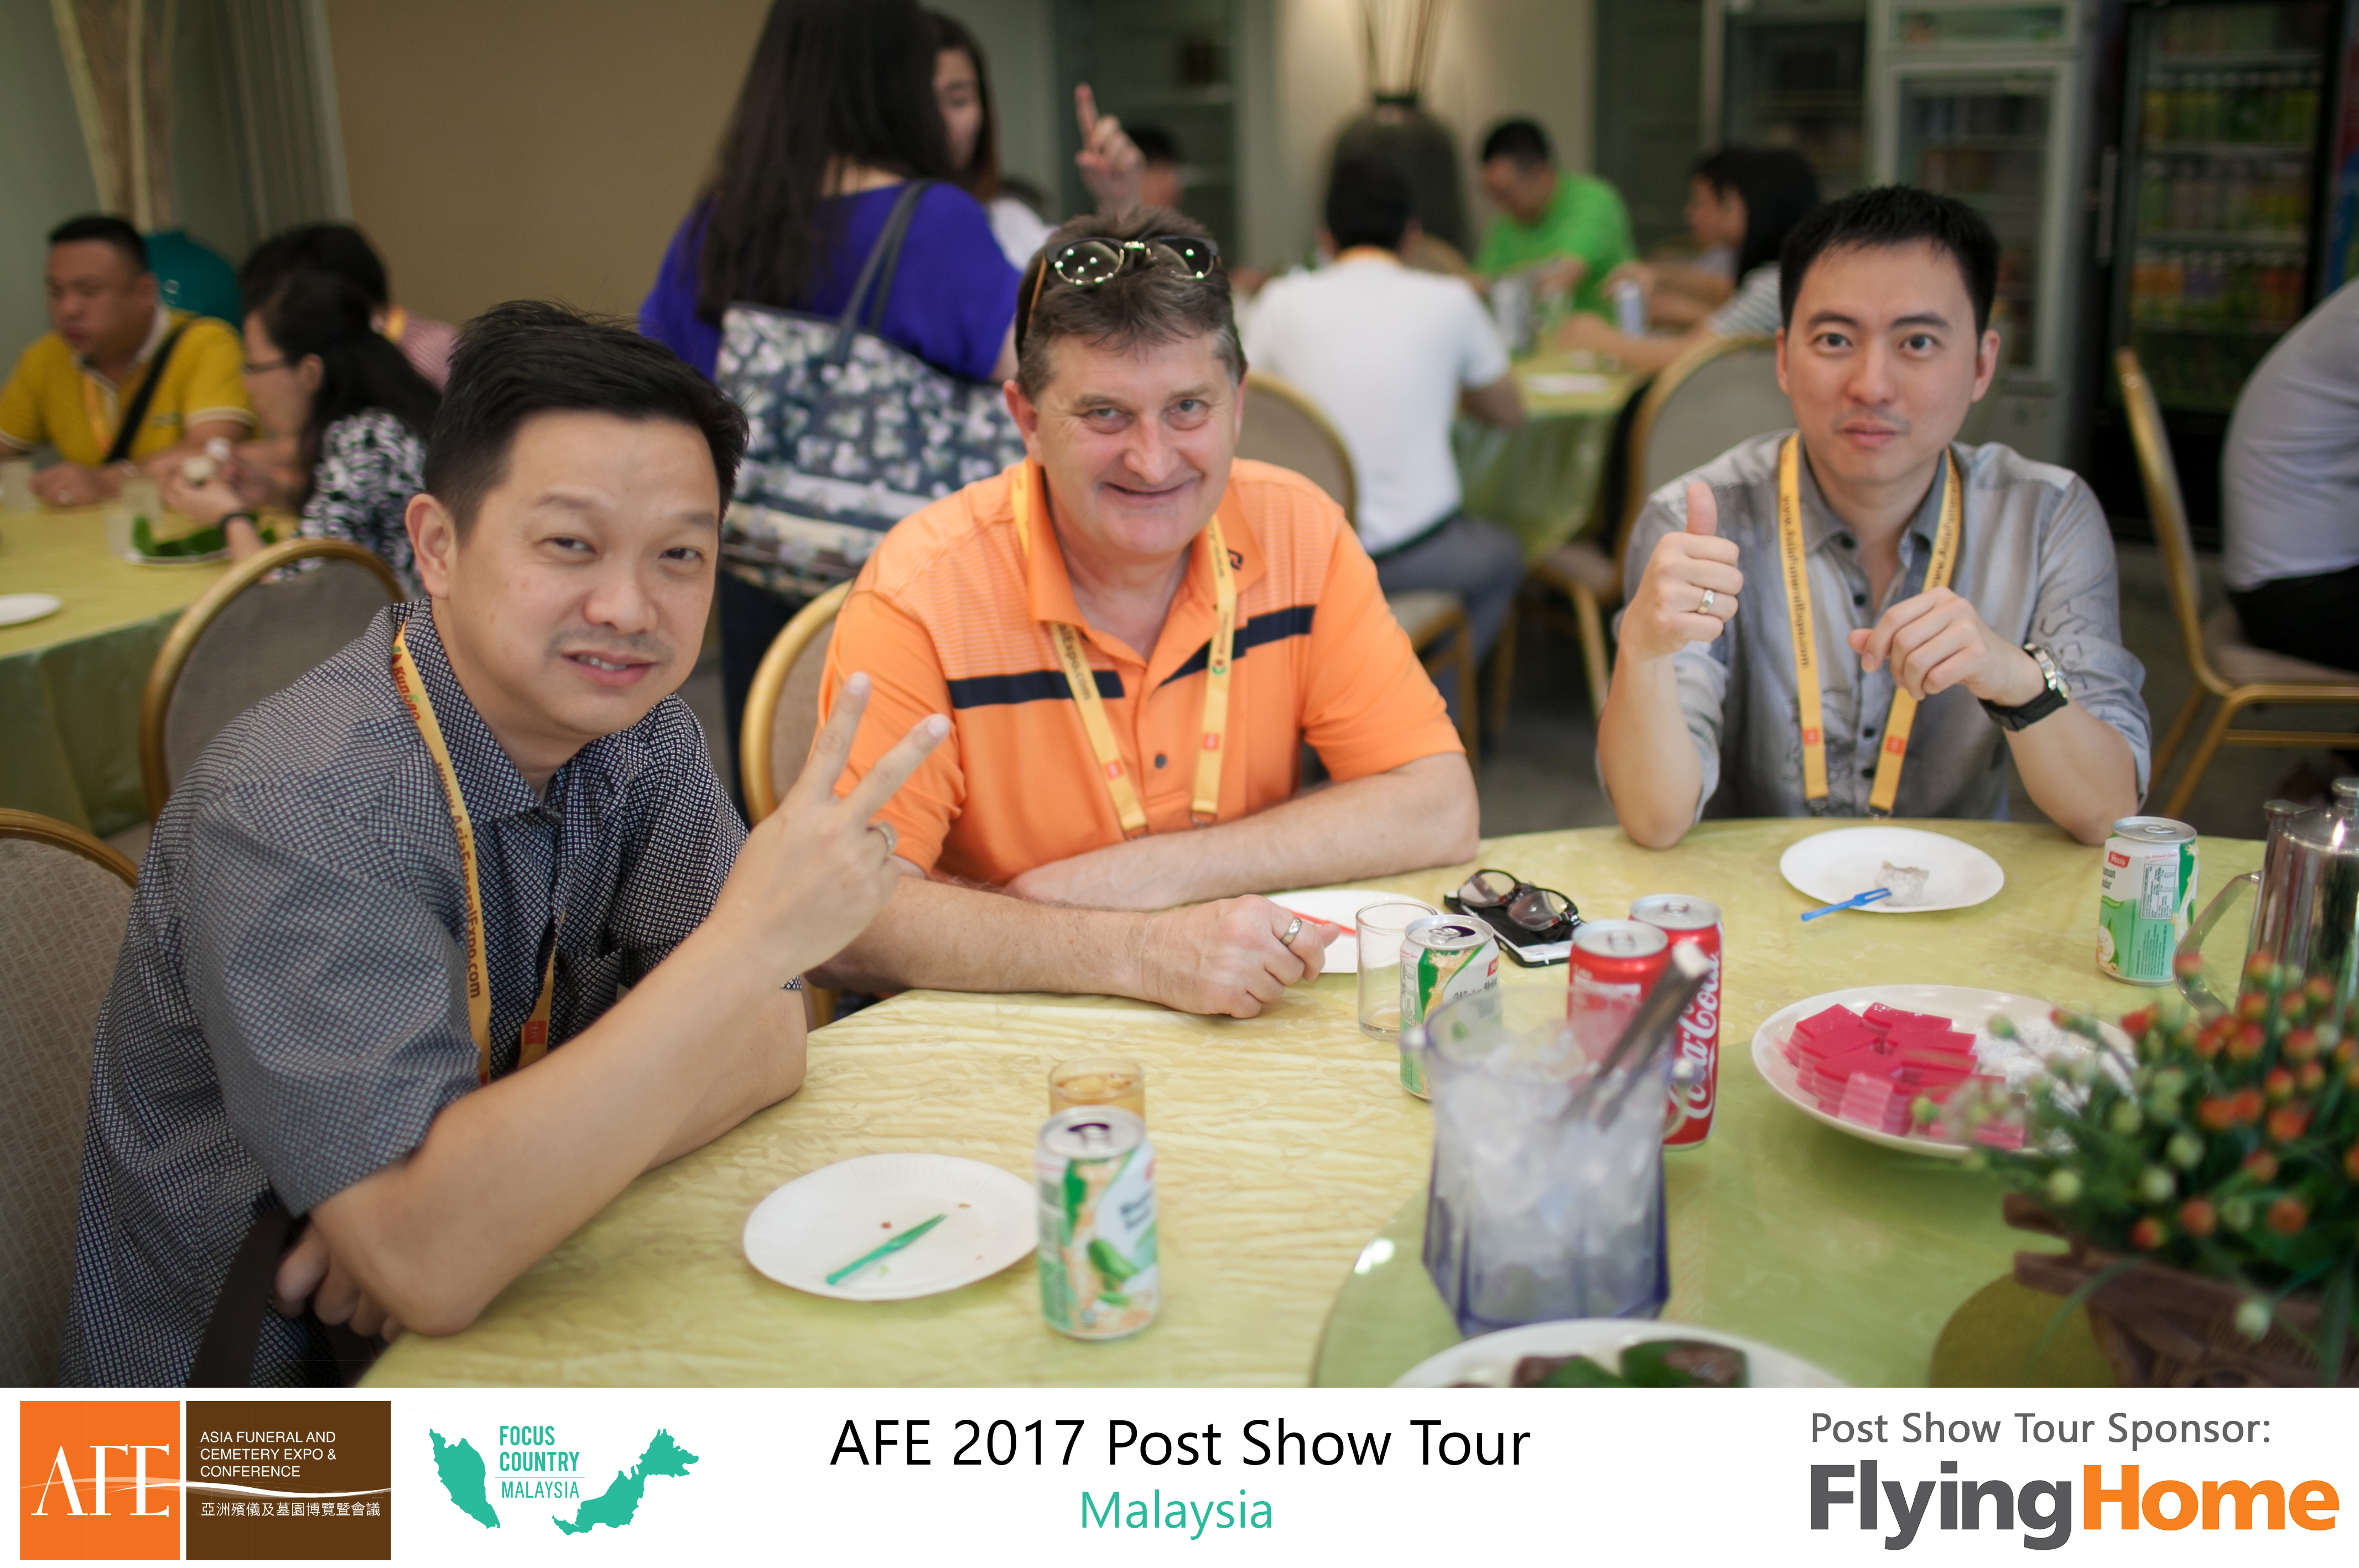 AFE Post Show Tour 2017 Day 2 - 25